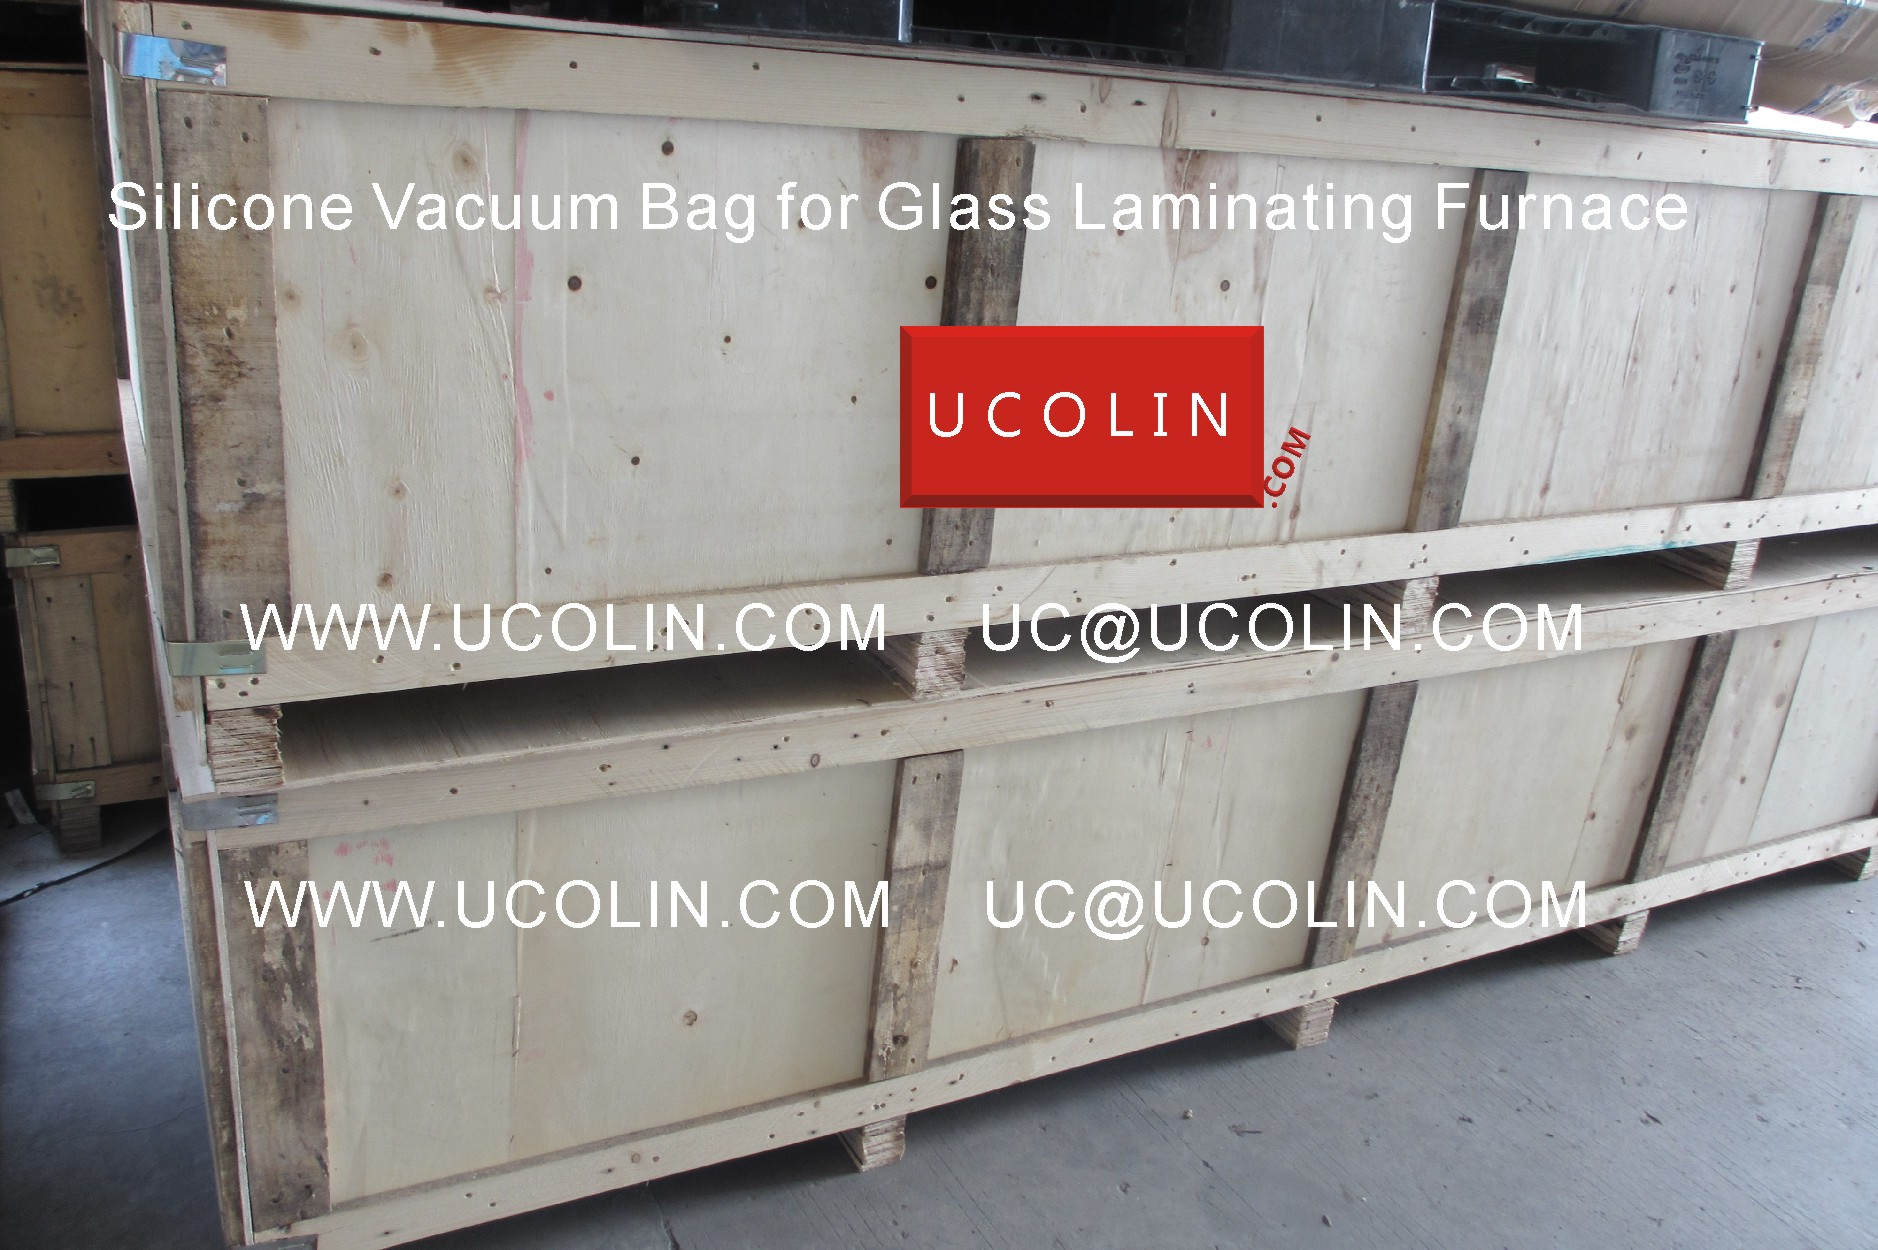 05 Producing of Silicone Vacuum Bag for Glass Laminating Furnace